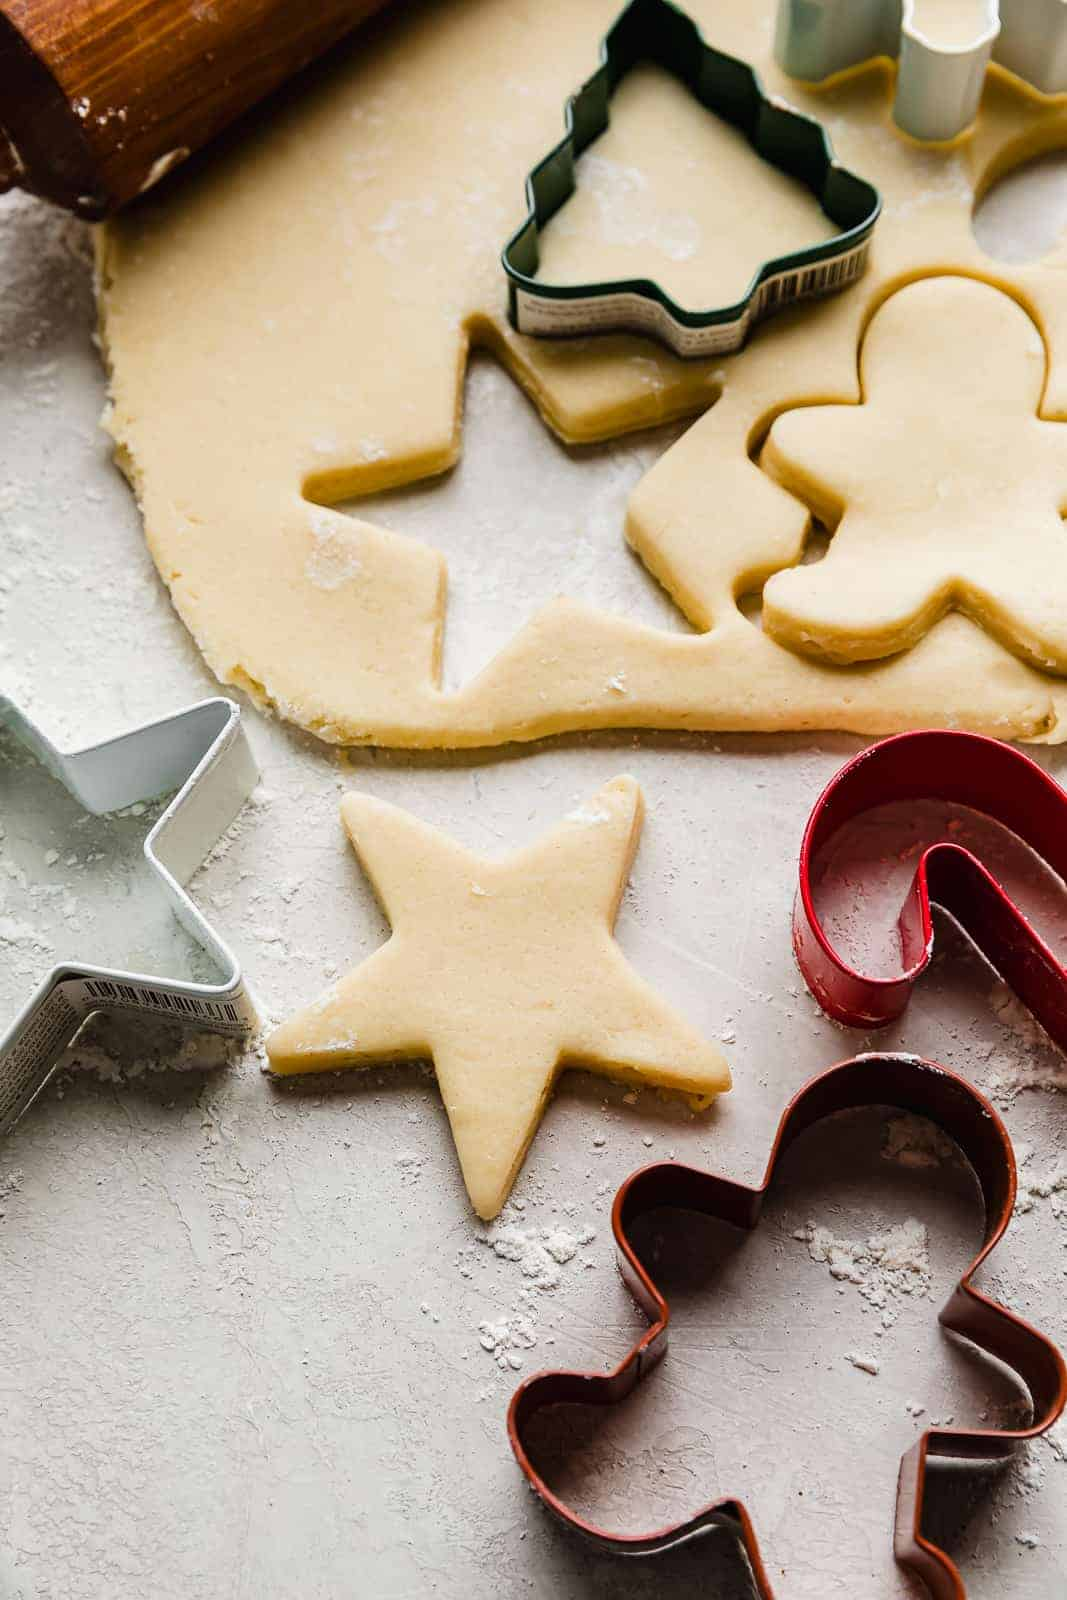 Sugar cookie dough rolled out and a star shape cookie cutter next to the dough.